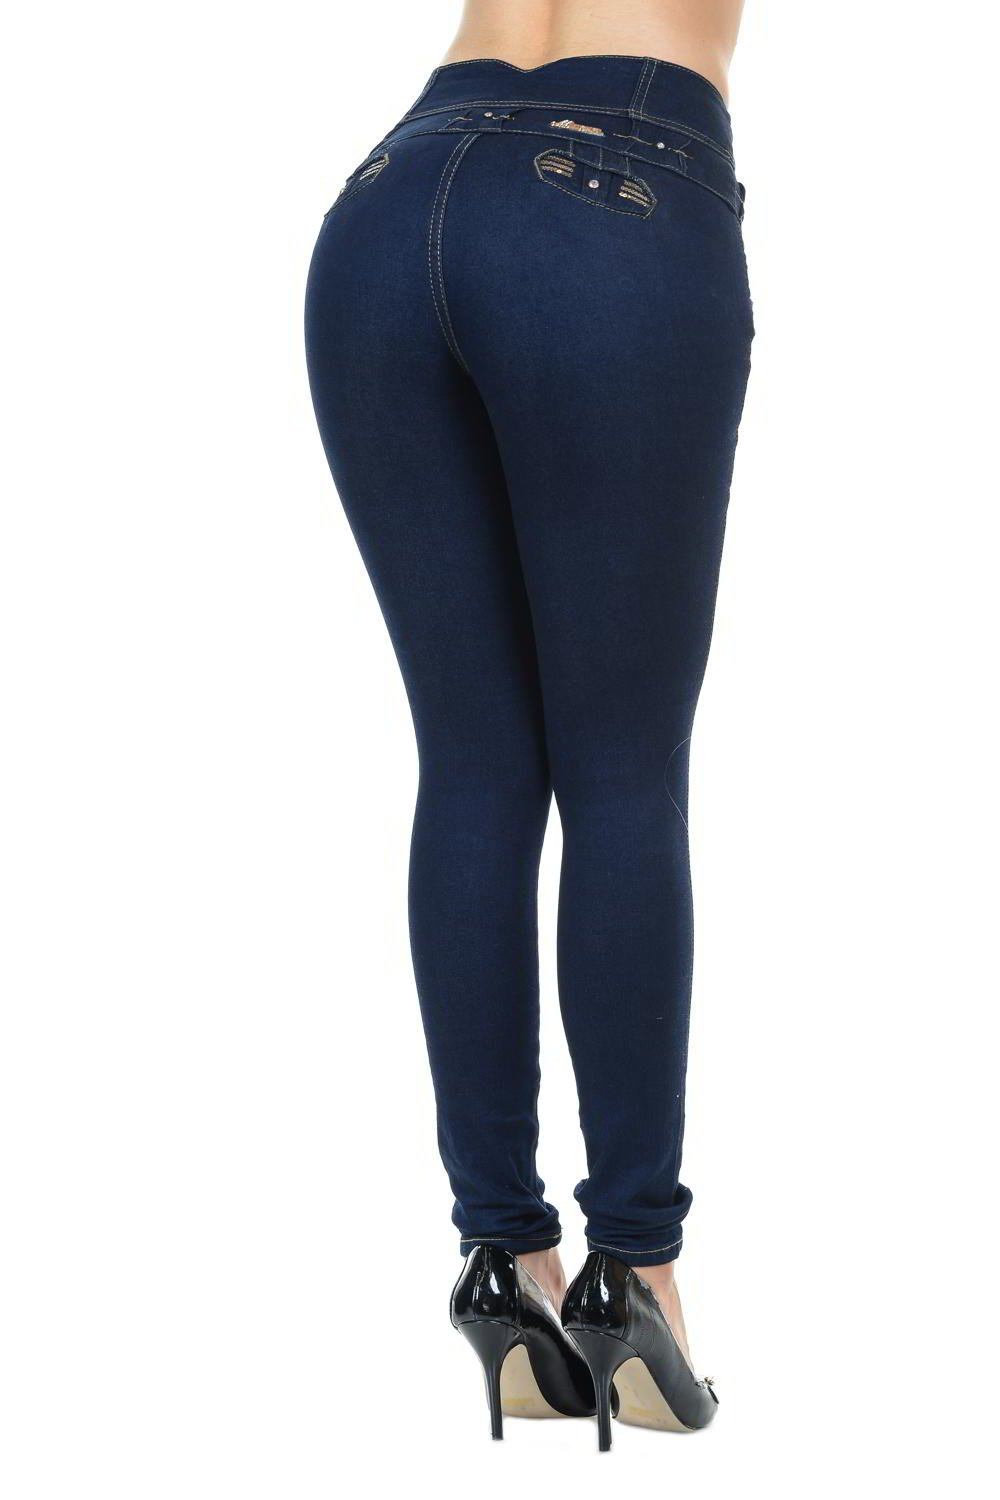 M.Michel Women's Jeans Colombian Design, Butt Lift, Levanta Cola, Push-Up, Skinny - Style G970 - Navy - Size 01